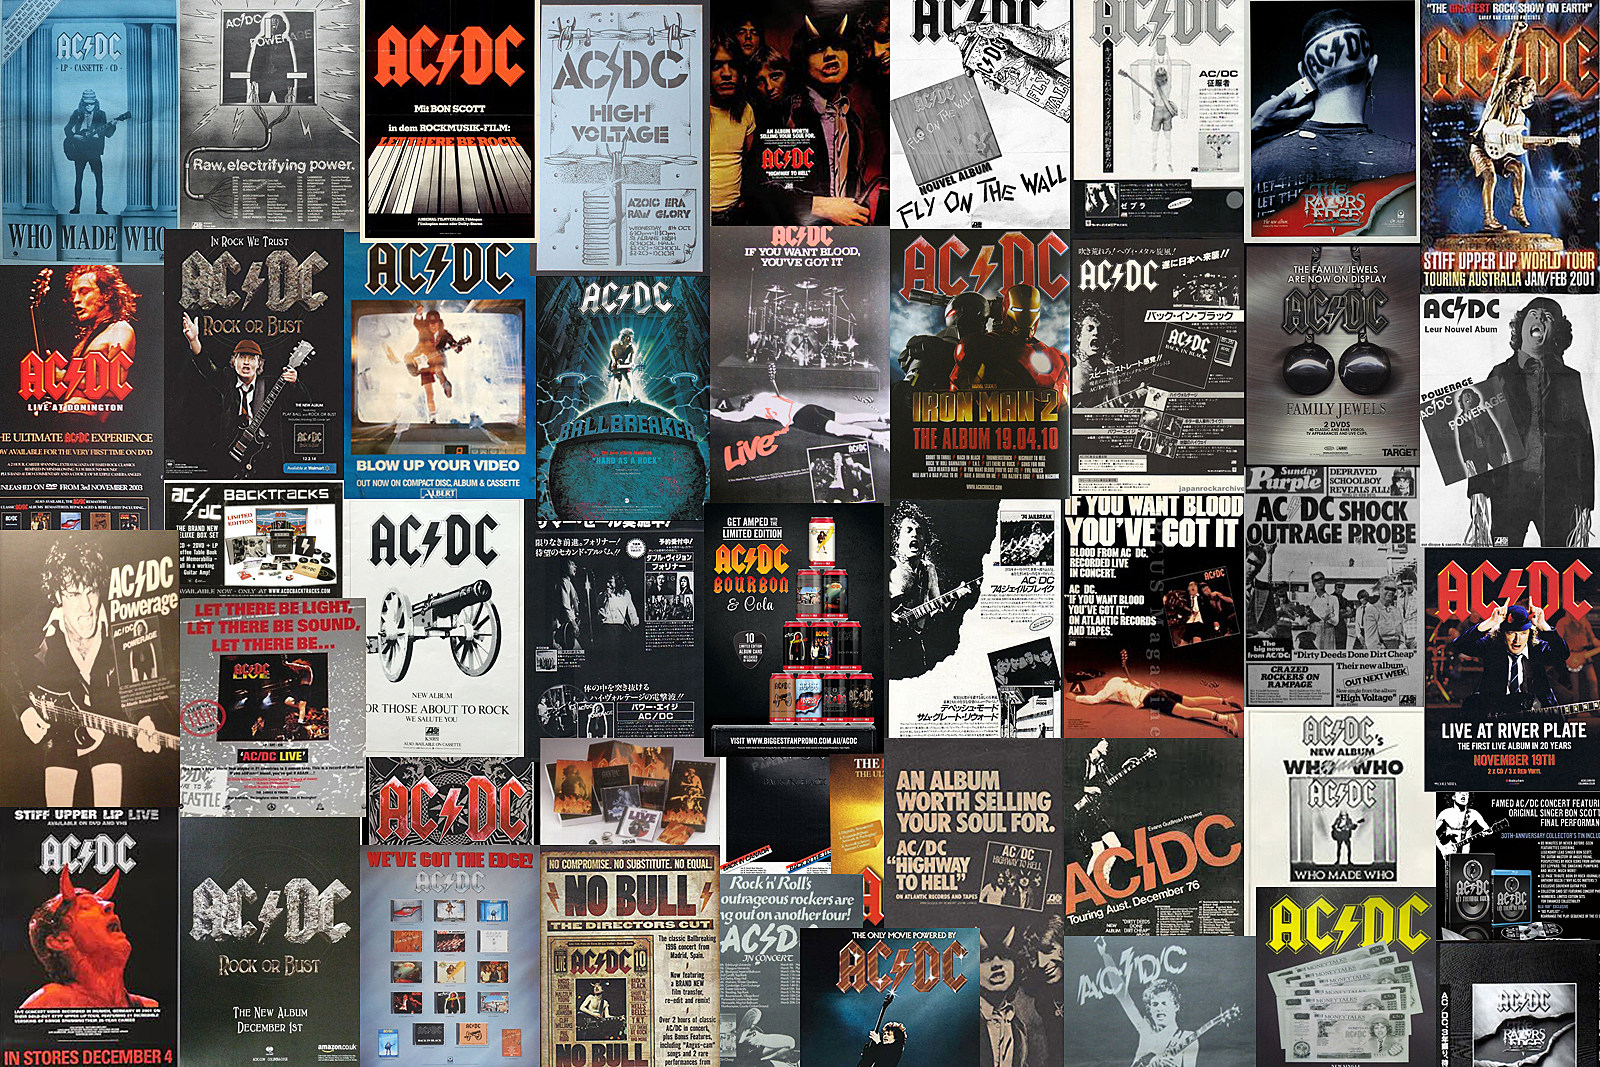 Top 50 AC/DC Songs